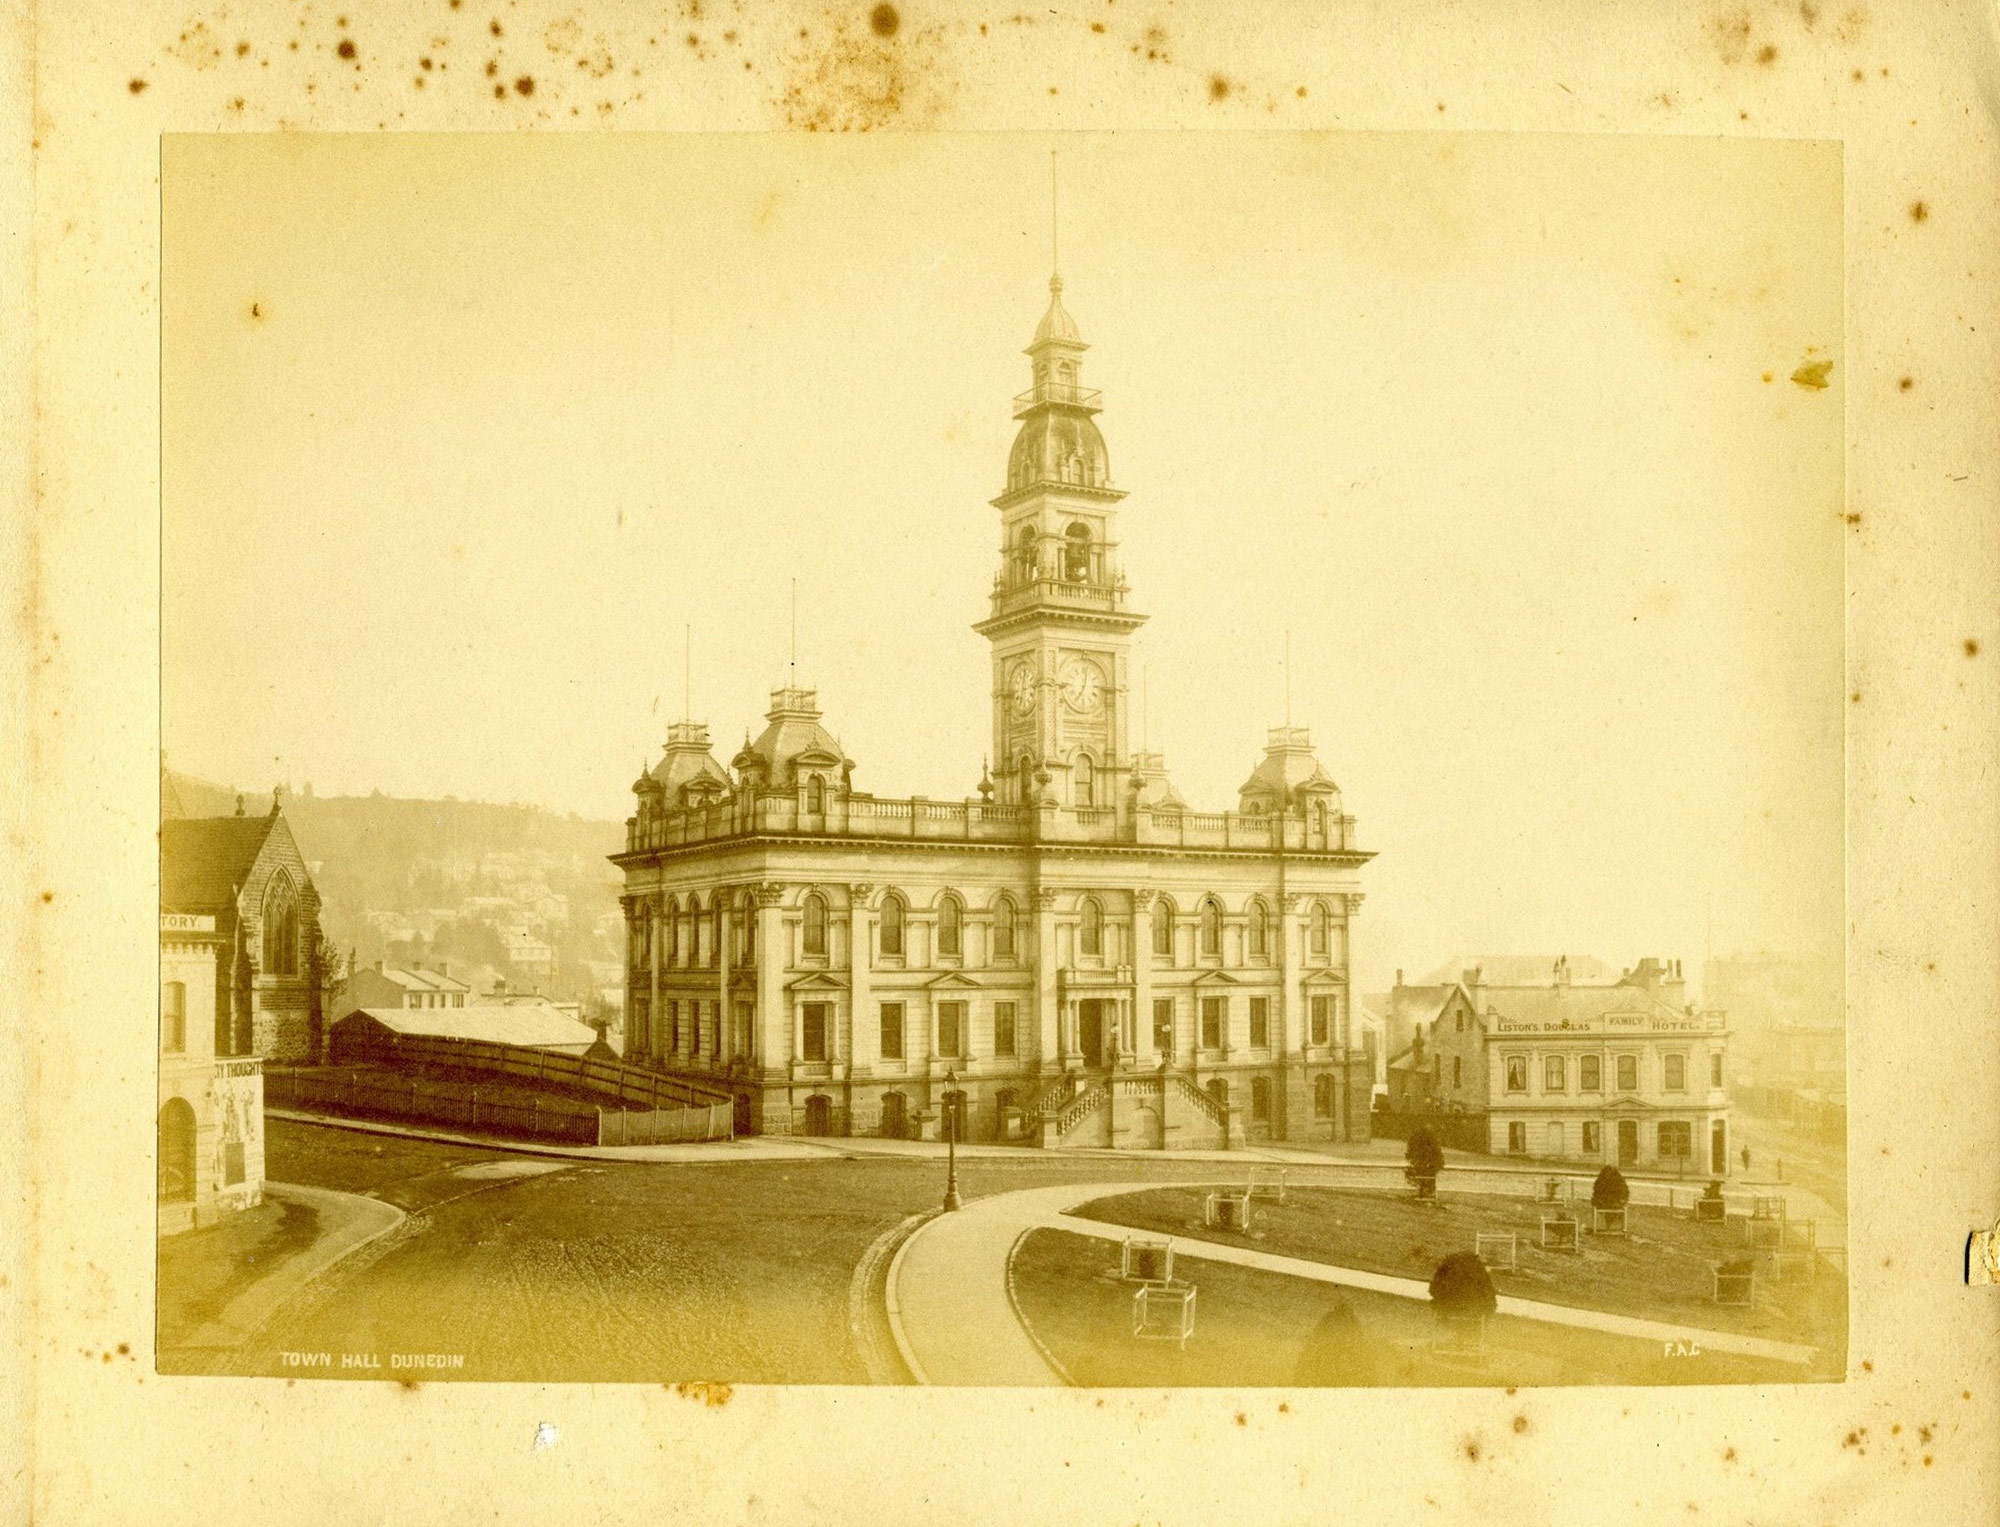 The Municipal Chambers built in 1878